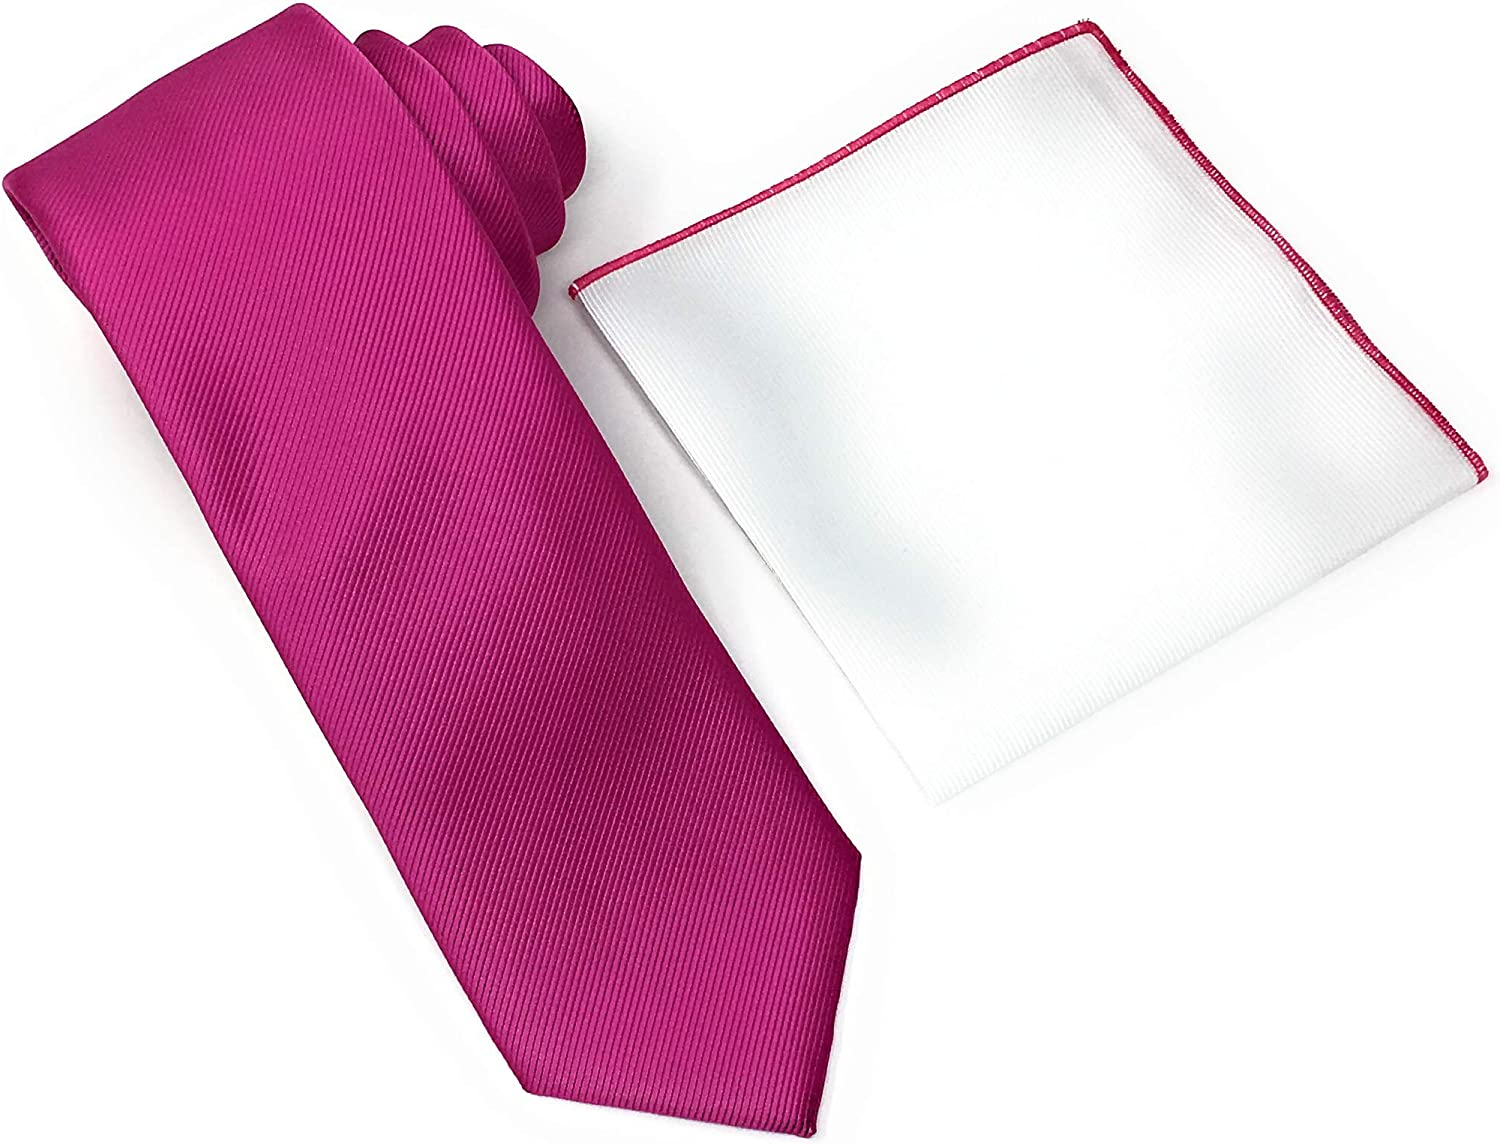 Solid Red Violet Weave 100% Silk Necktie With A White Pocket Square With Red Violet Trim